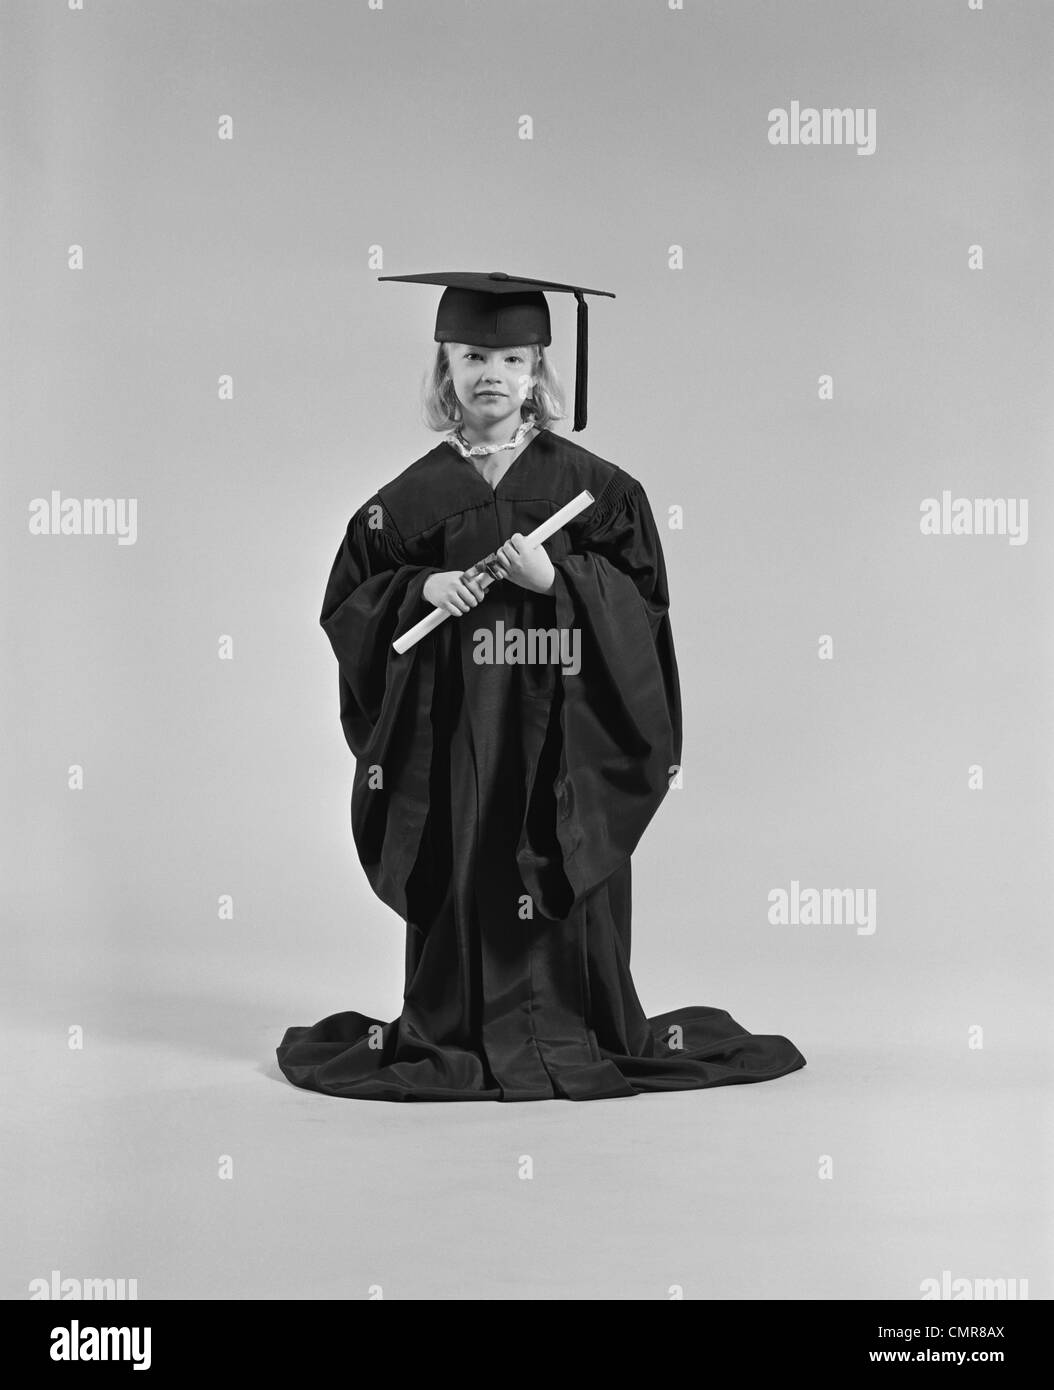 Black dress under white graduation gown - 1970s Girl Wearing Graduation Cap Gown Holding Diploma Stock Image